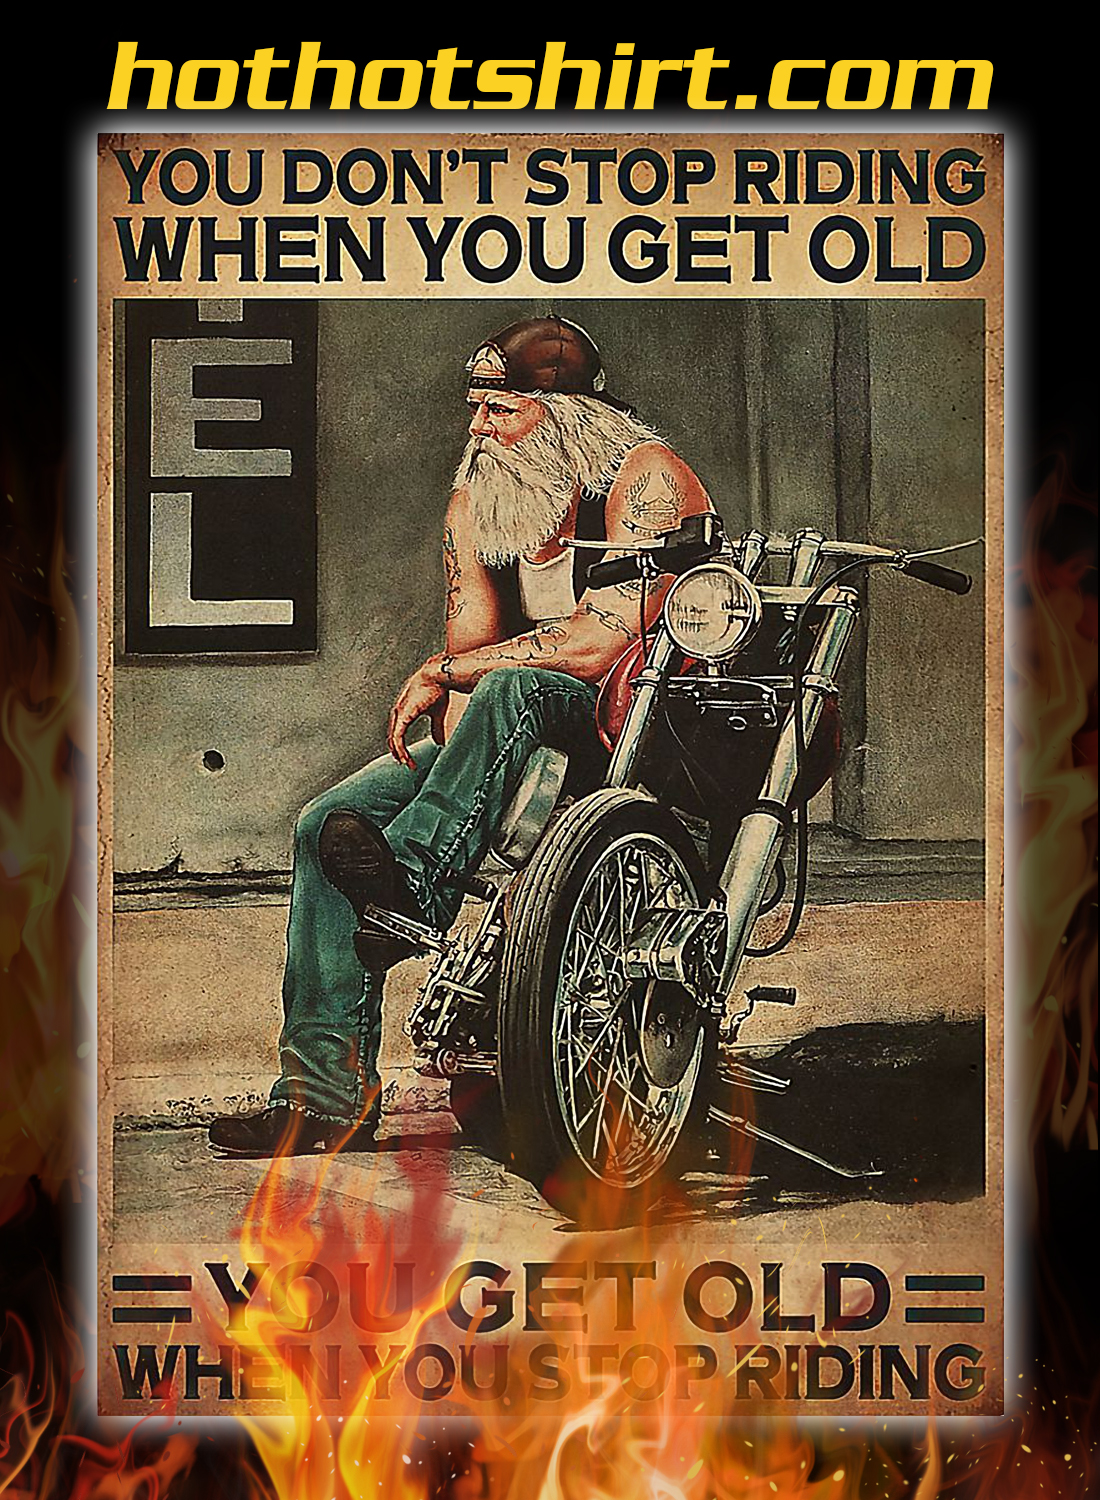 Old biker Motorcycle you don't stop riding poster